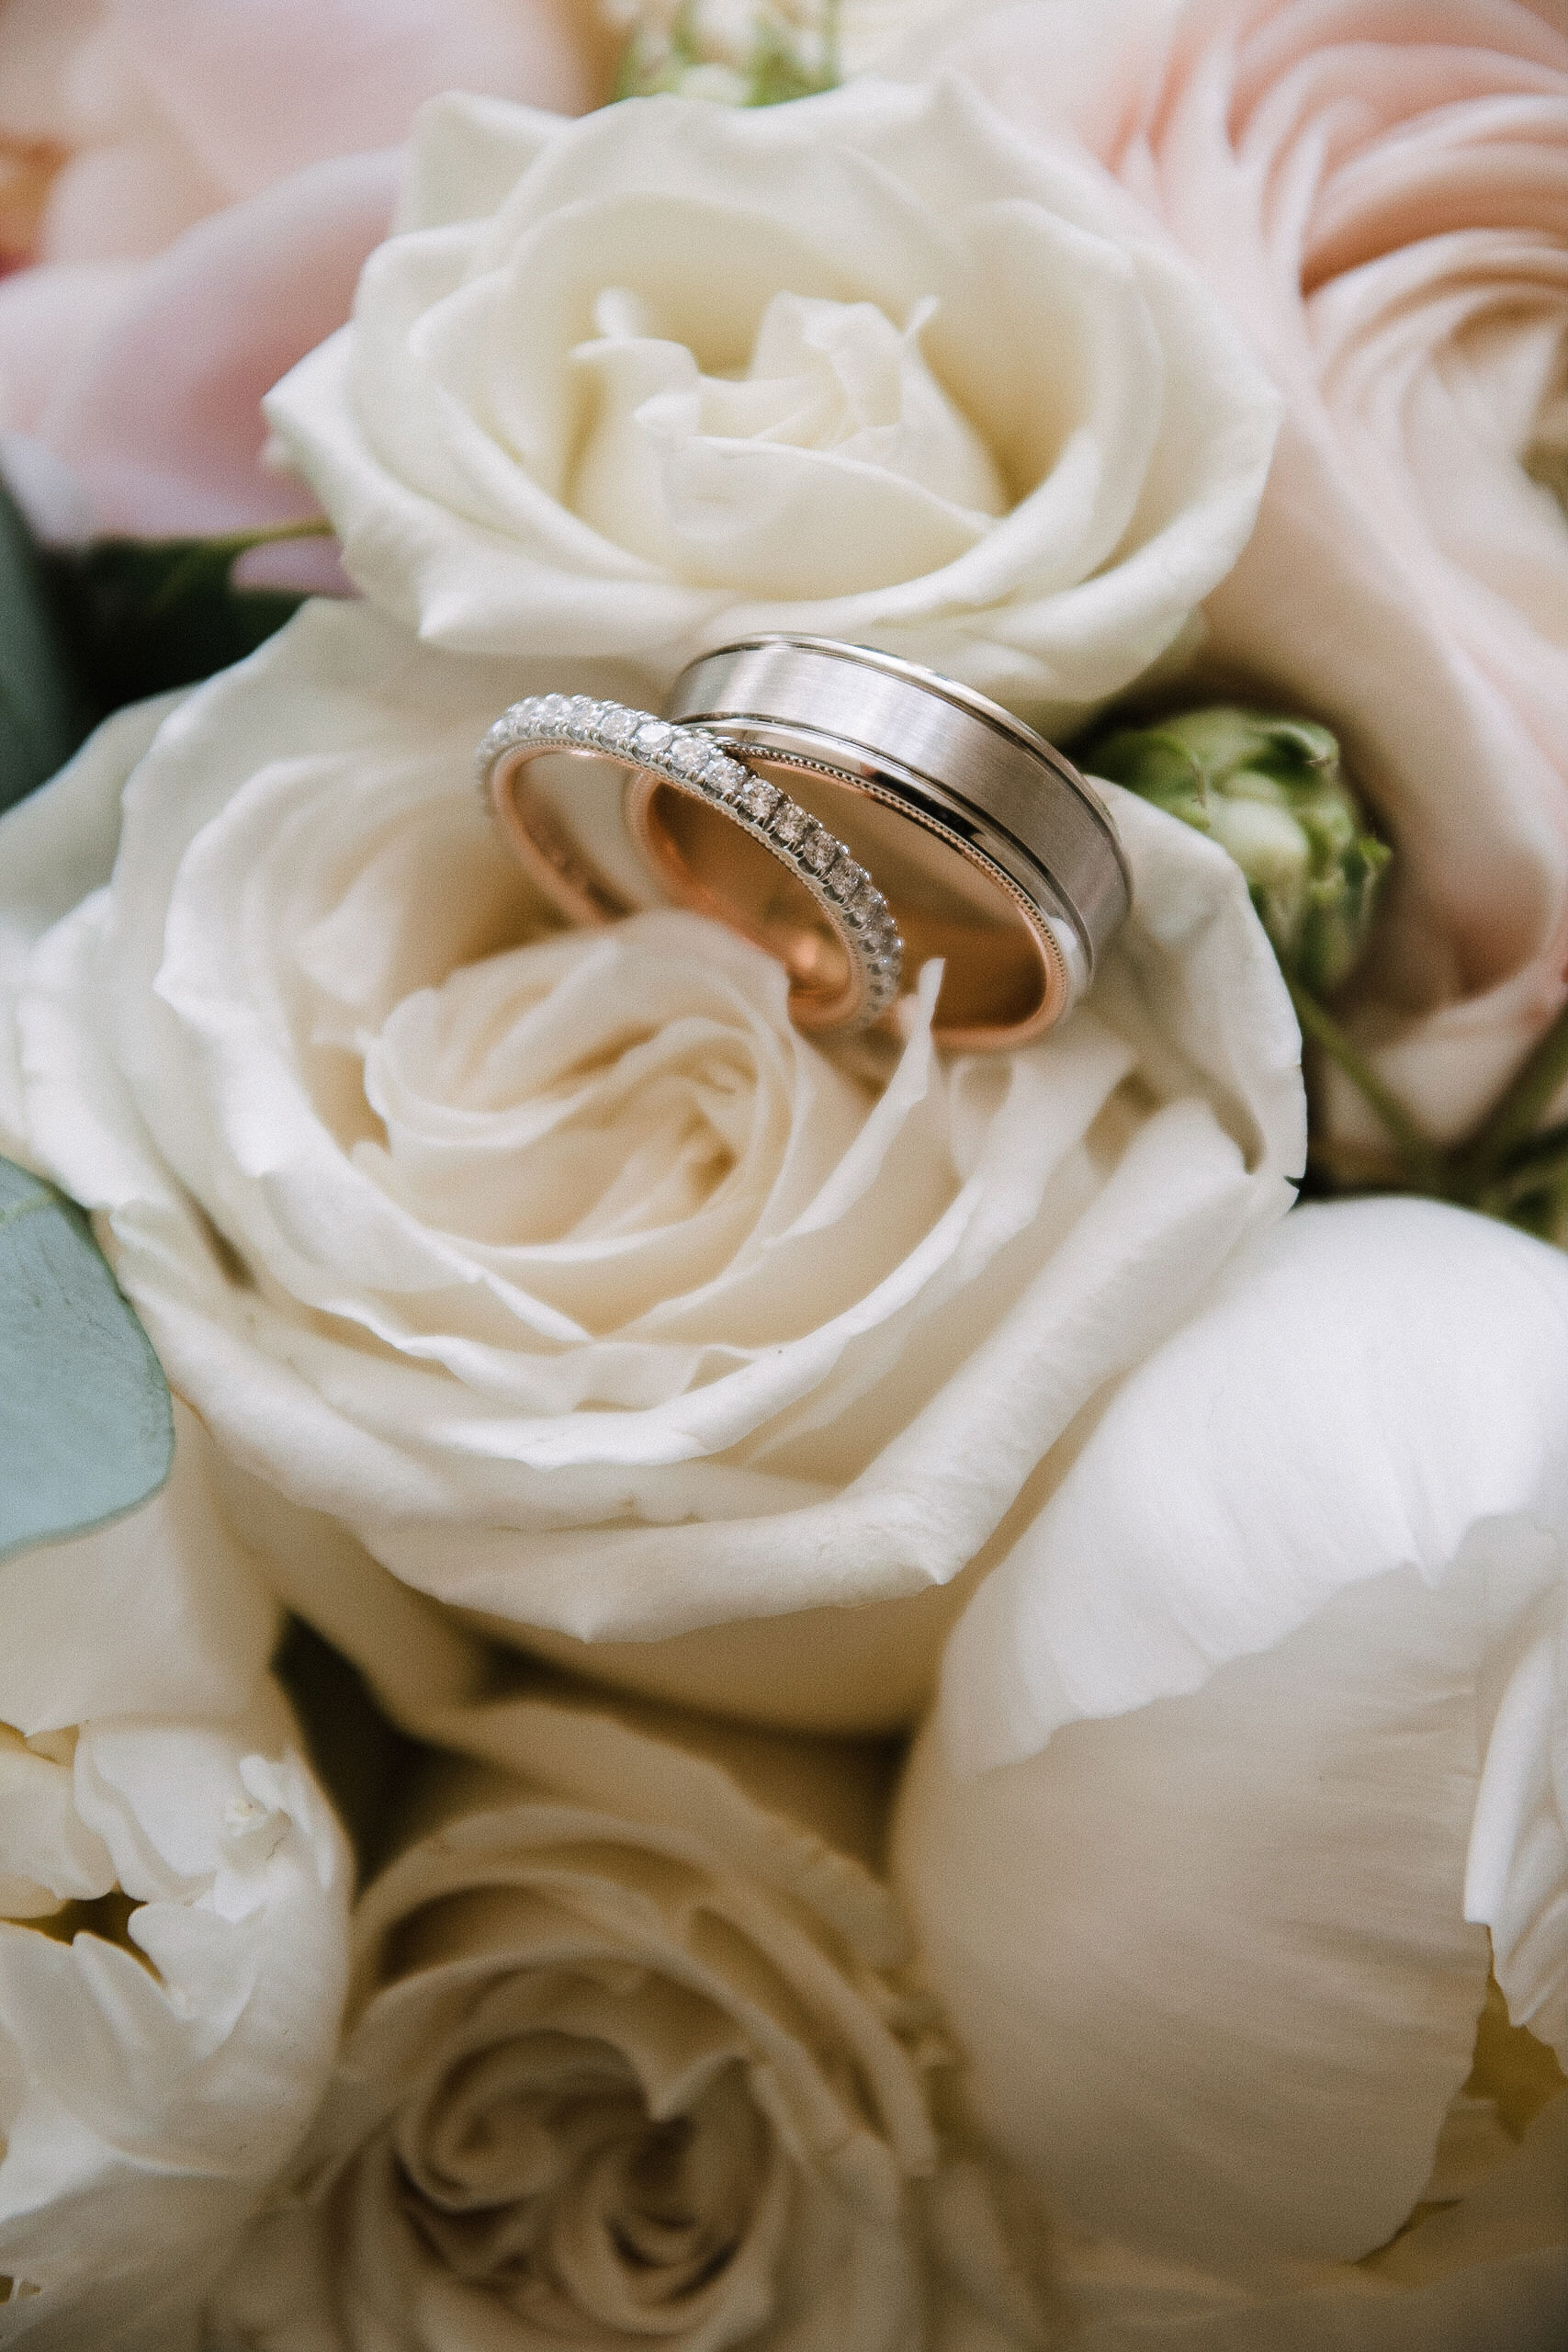 detail shot of weddings rings at Rixey Manor